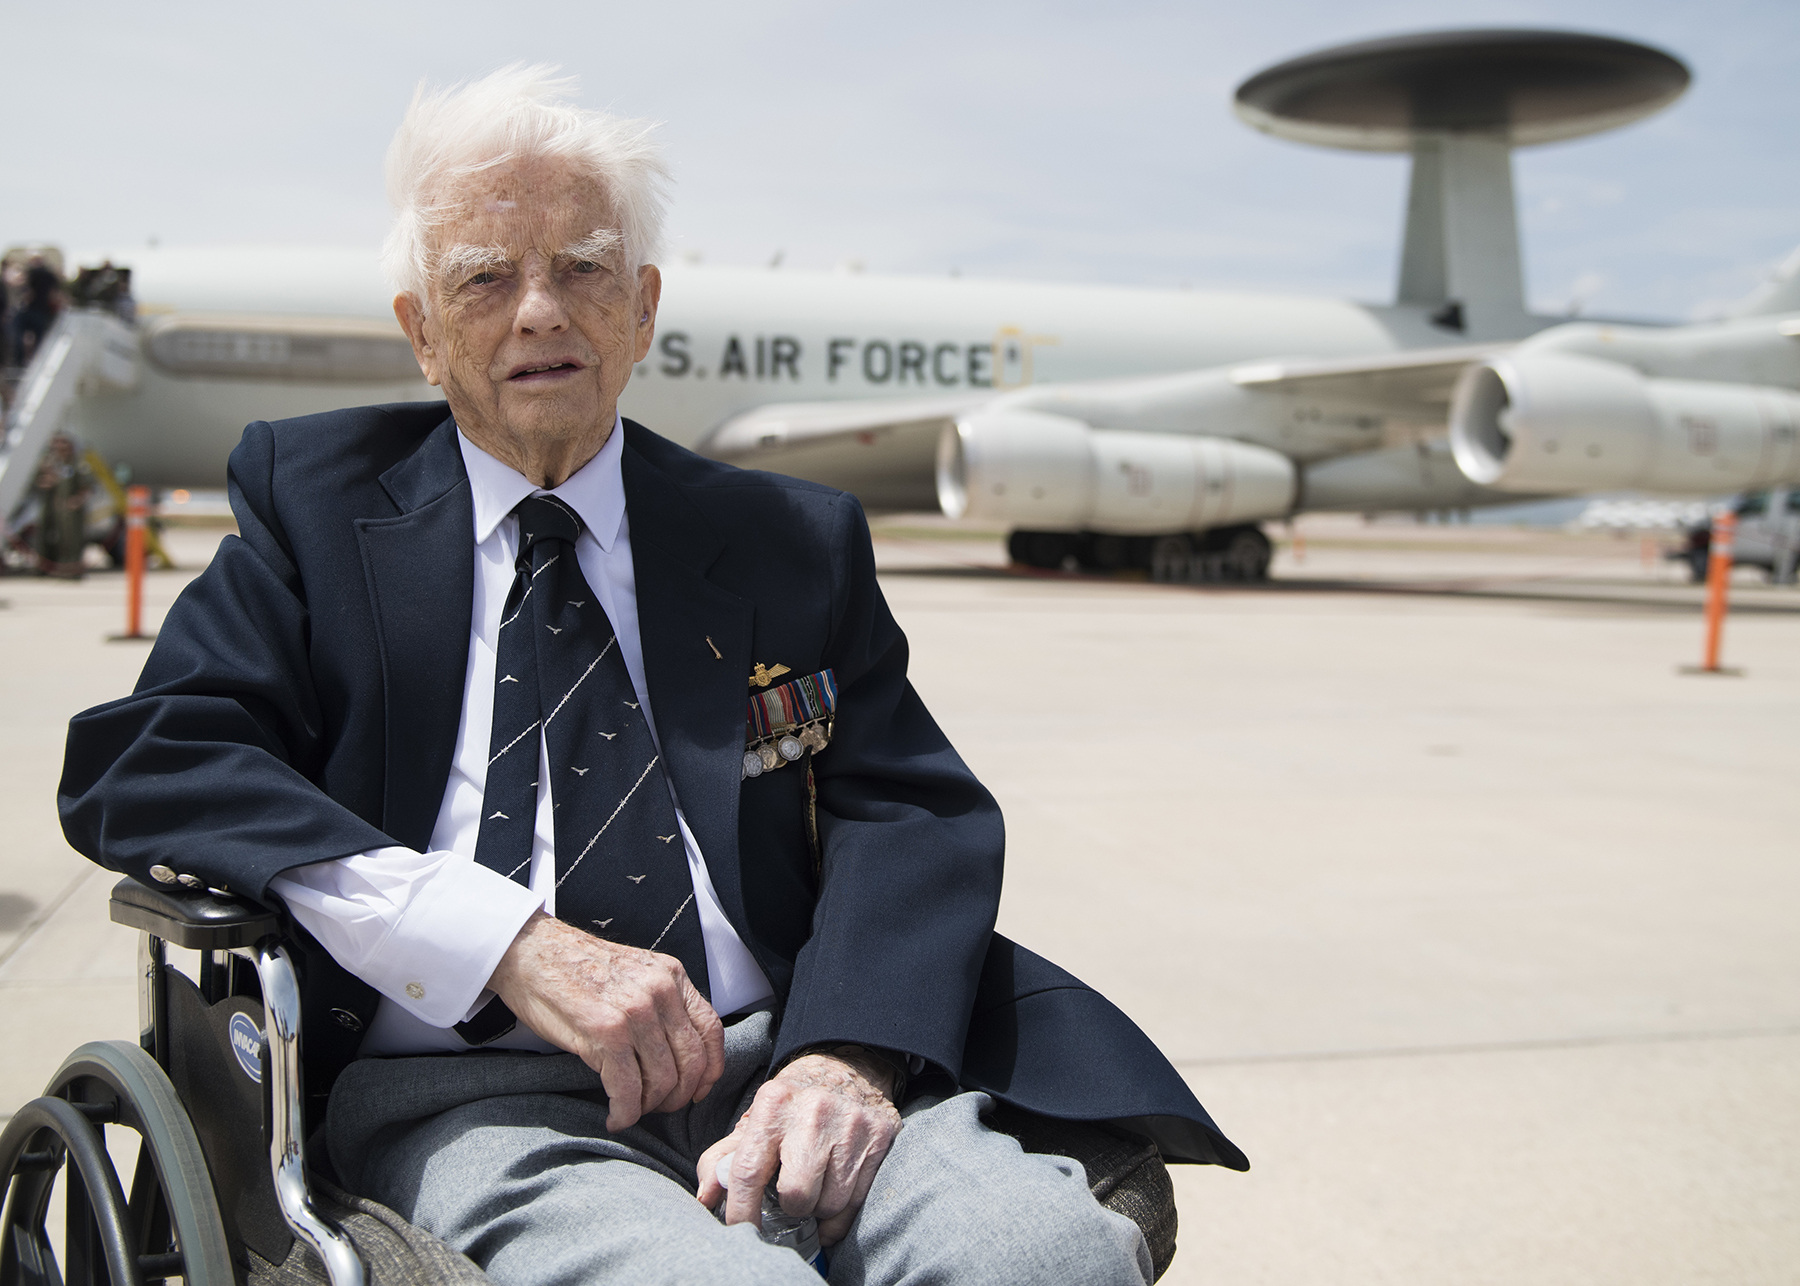 RCAF Second World War veteran Squadron Leader (retired) George Sweanor, 98, pauses for a photo at the North American Aerospace Defense Command's 60th Anniversary Ceremony on Peterson Air Force Base Colorado, May 12, 2018. In 1942, Squadron Leader Sweanor was shot down and captured after multiple flights over enemy td him.erritory, and spent 800 days as a prisoner of war. PHOTO: U.S. DoD, Staff Sergeant Emily Kenney